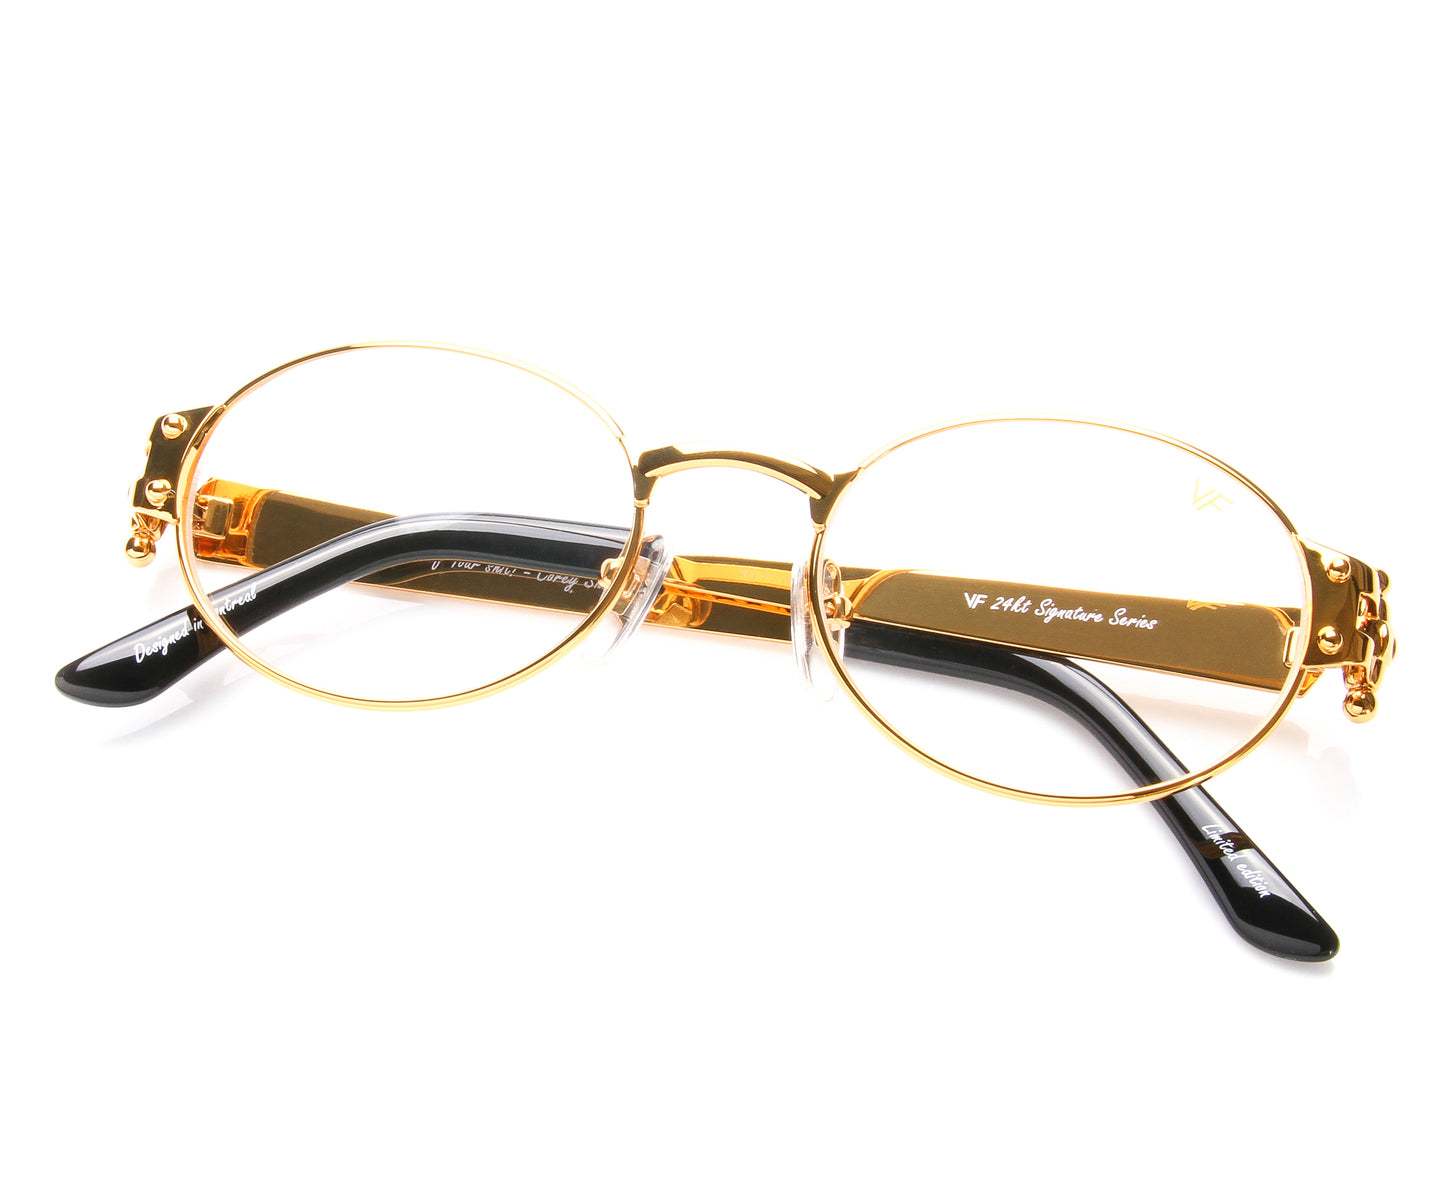 VF 2000 24KT Gold Masterpiece (Clear), VF Masterpiece , glasses frames, eyeglasses online, eyeglass frames, mens glasses, womens glasses, buy glasses online, designer eyeglasses, vintage sunglasses, retro sunglasses, vintage glasses, sunglass, eyeglass, glasses, lens, vintage frames company, vf